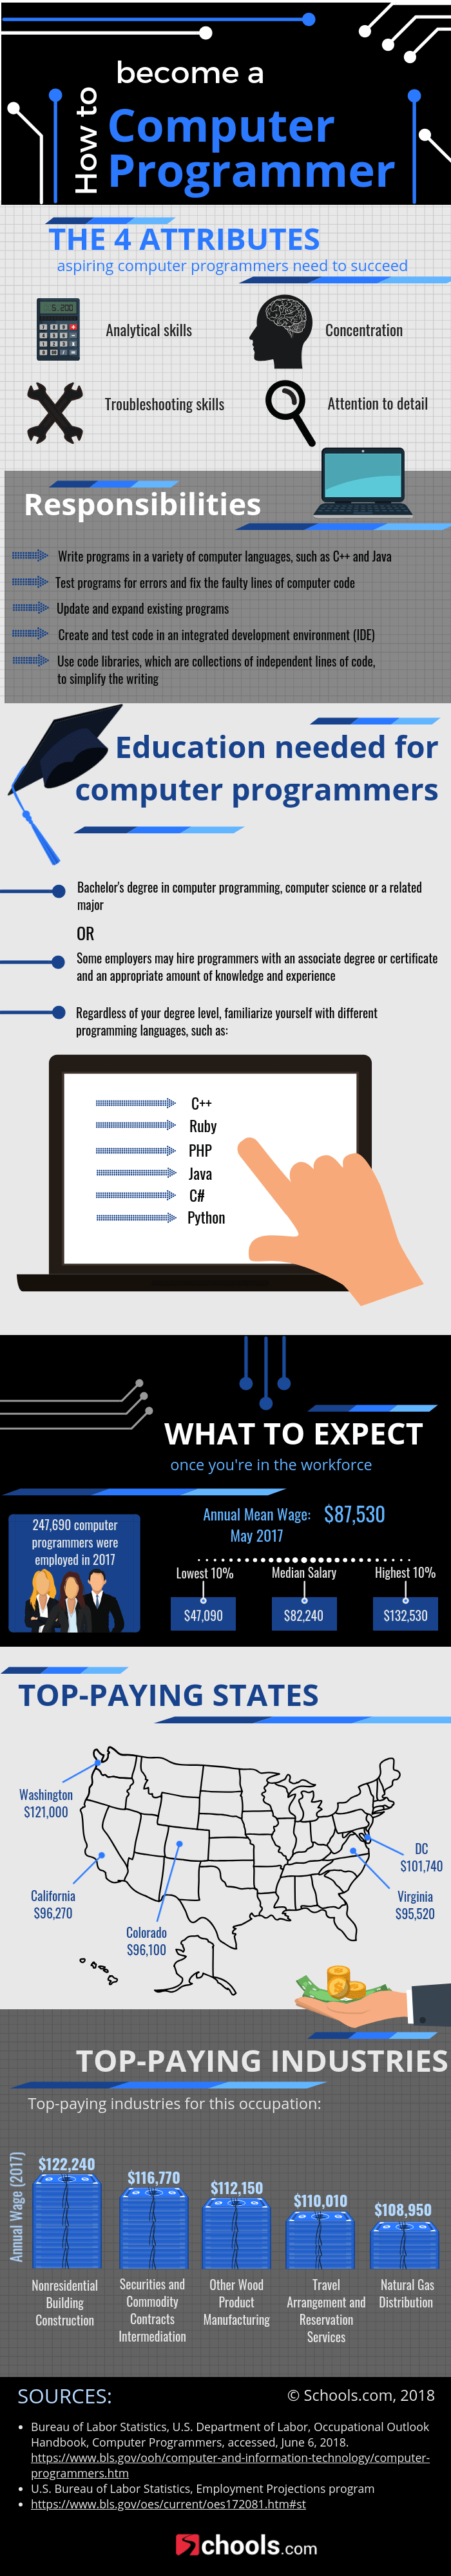 How to Build a Career as a Computer Programmer ...